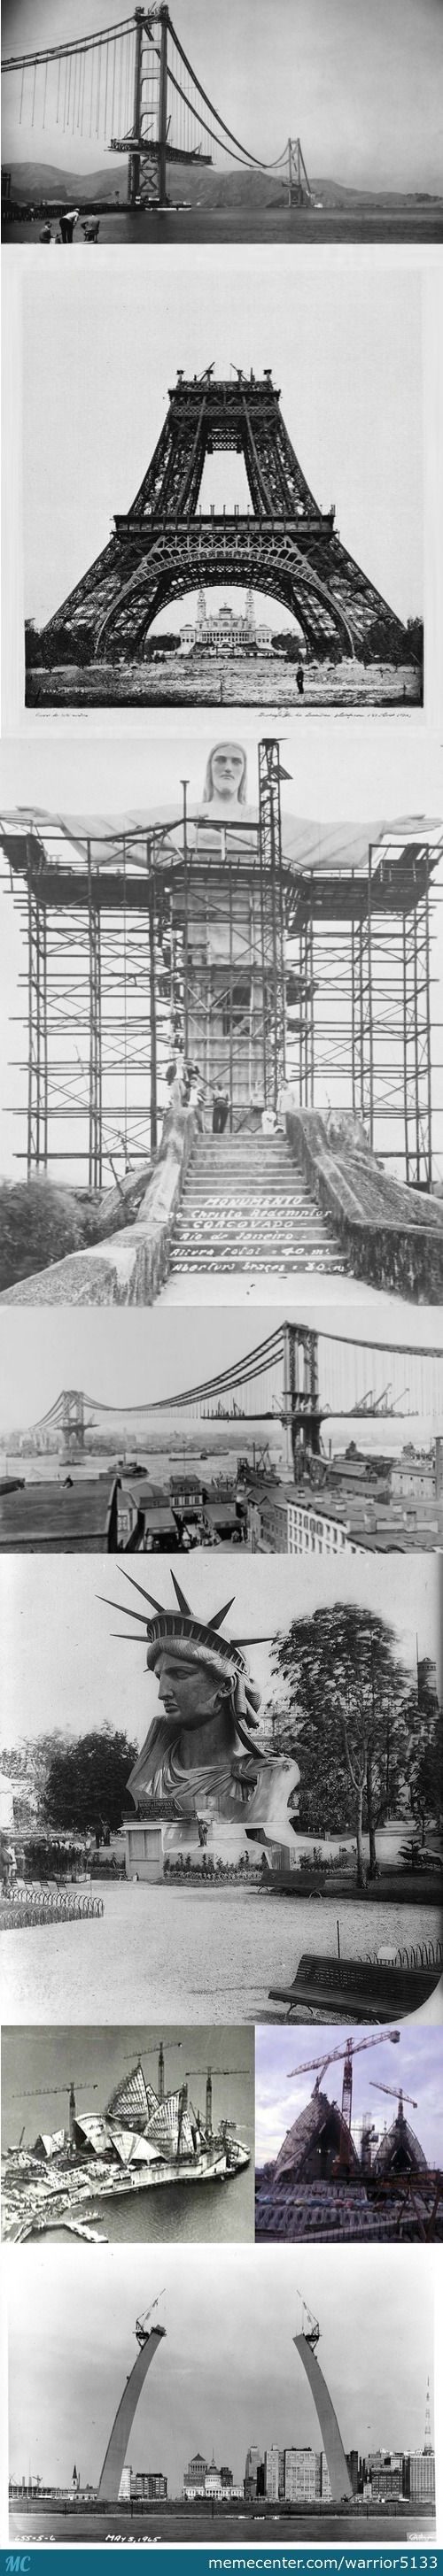 Famous Landmarks/ Structures Being Built